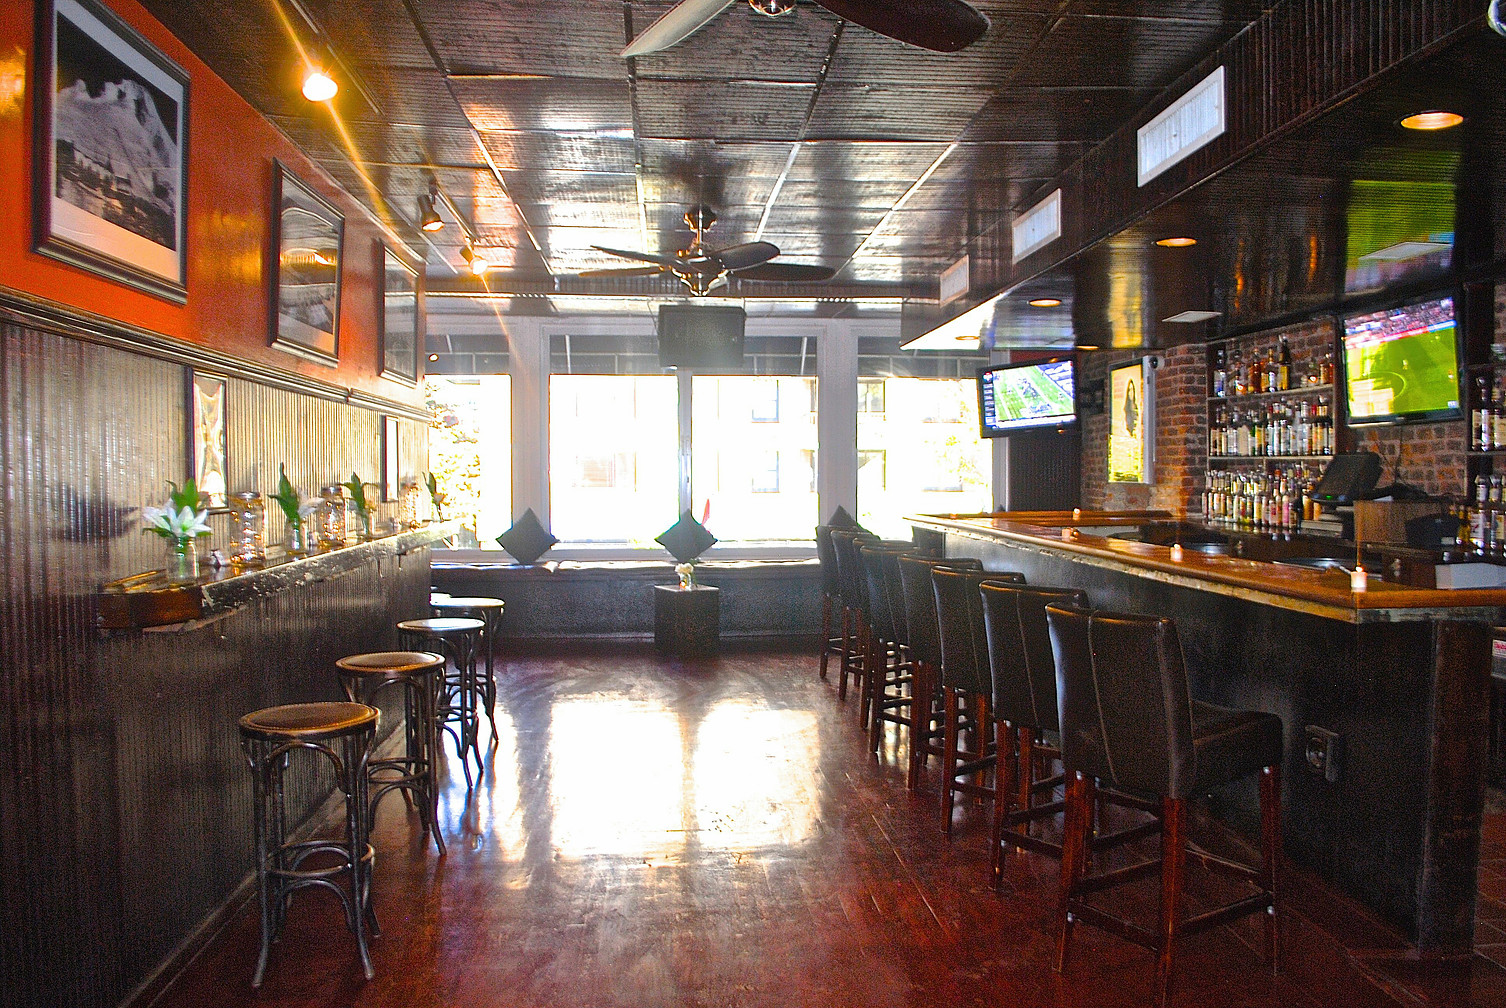 Upstairs Private Bar & Lounge event space at Mad River Bar and Grille in New York City, NYC, NY/NJ Area